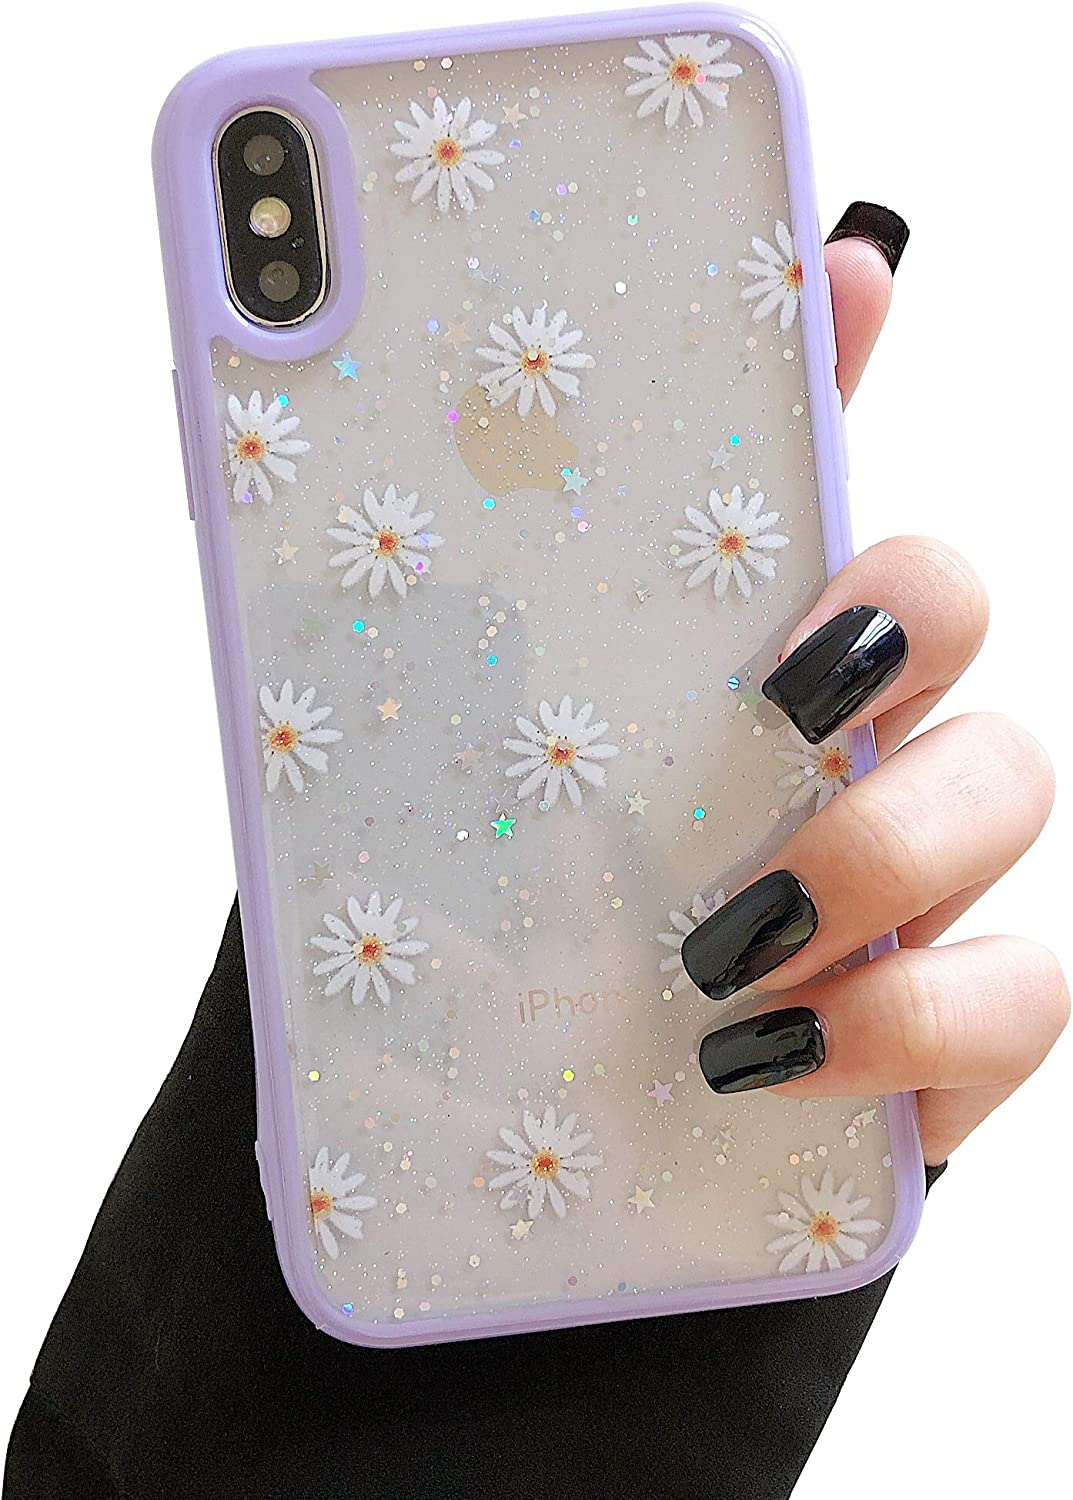 DEFBSC iPhone X iPhone Xs Cute Clear Case, Daisy Sparkly Bling Glitter Design Case Girls Woman Soft Slim TPU Bumper Shockproof Anti-Scratch Protective Case for iPhone X/XS 5.8 Inch-Purple